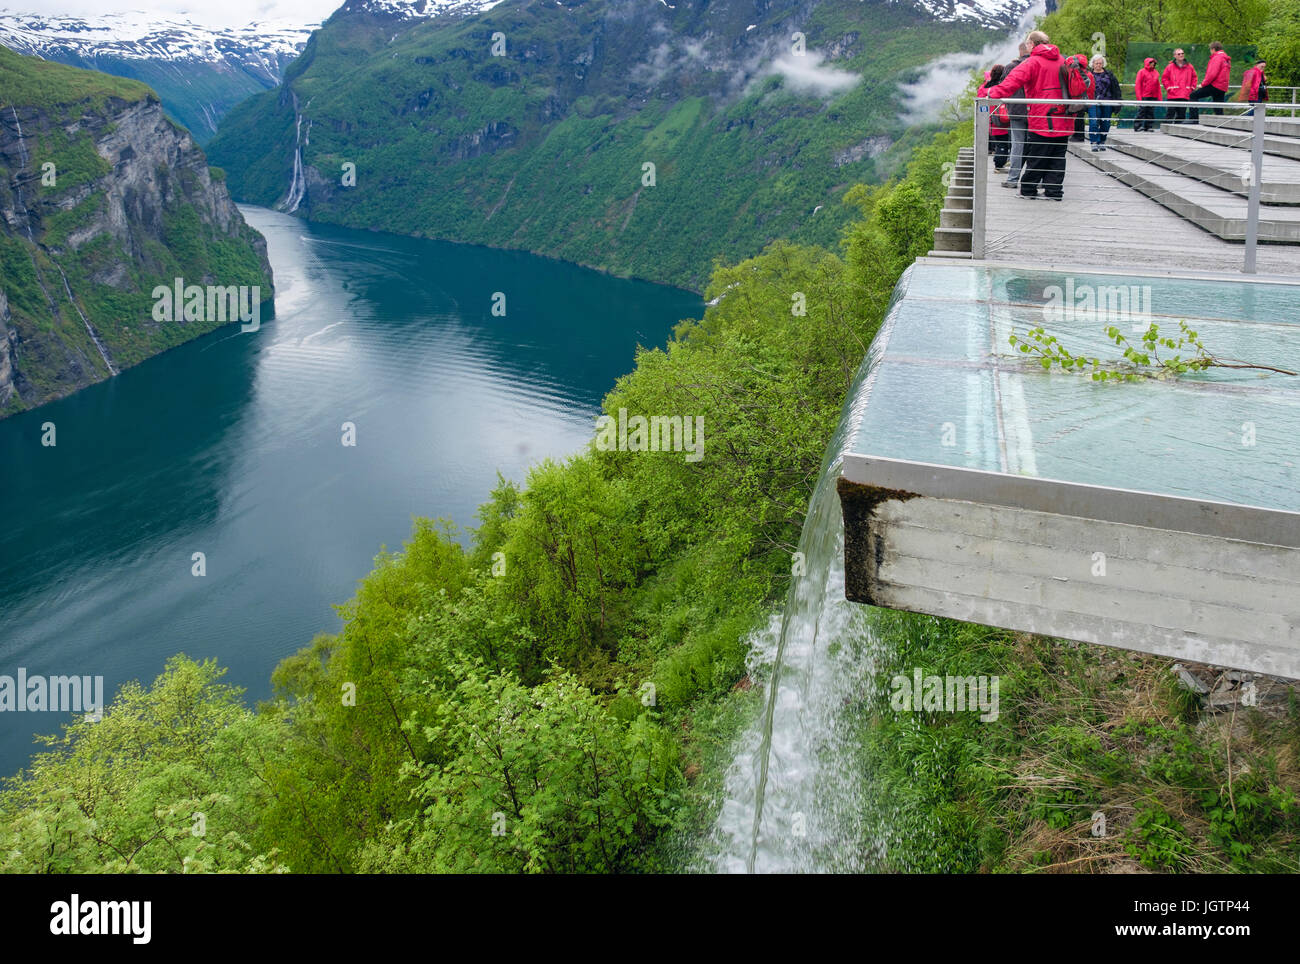 Artificial waterfall with tourists looking at view from high Eagles Road viewpoint platform overlooking Geirangerfjorden Stock Photo